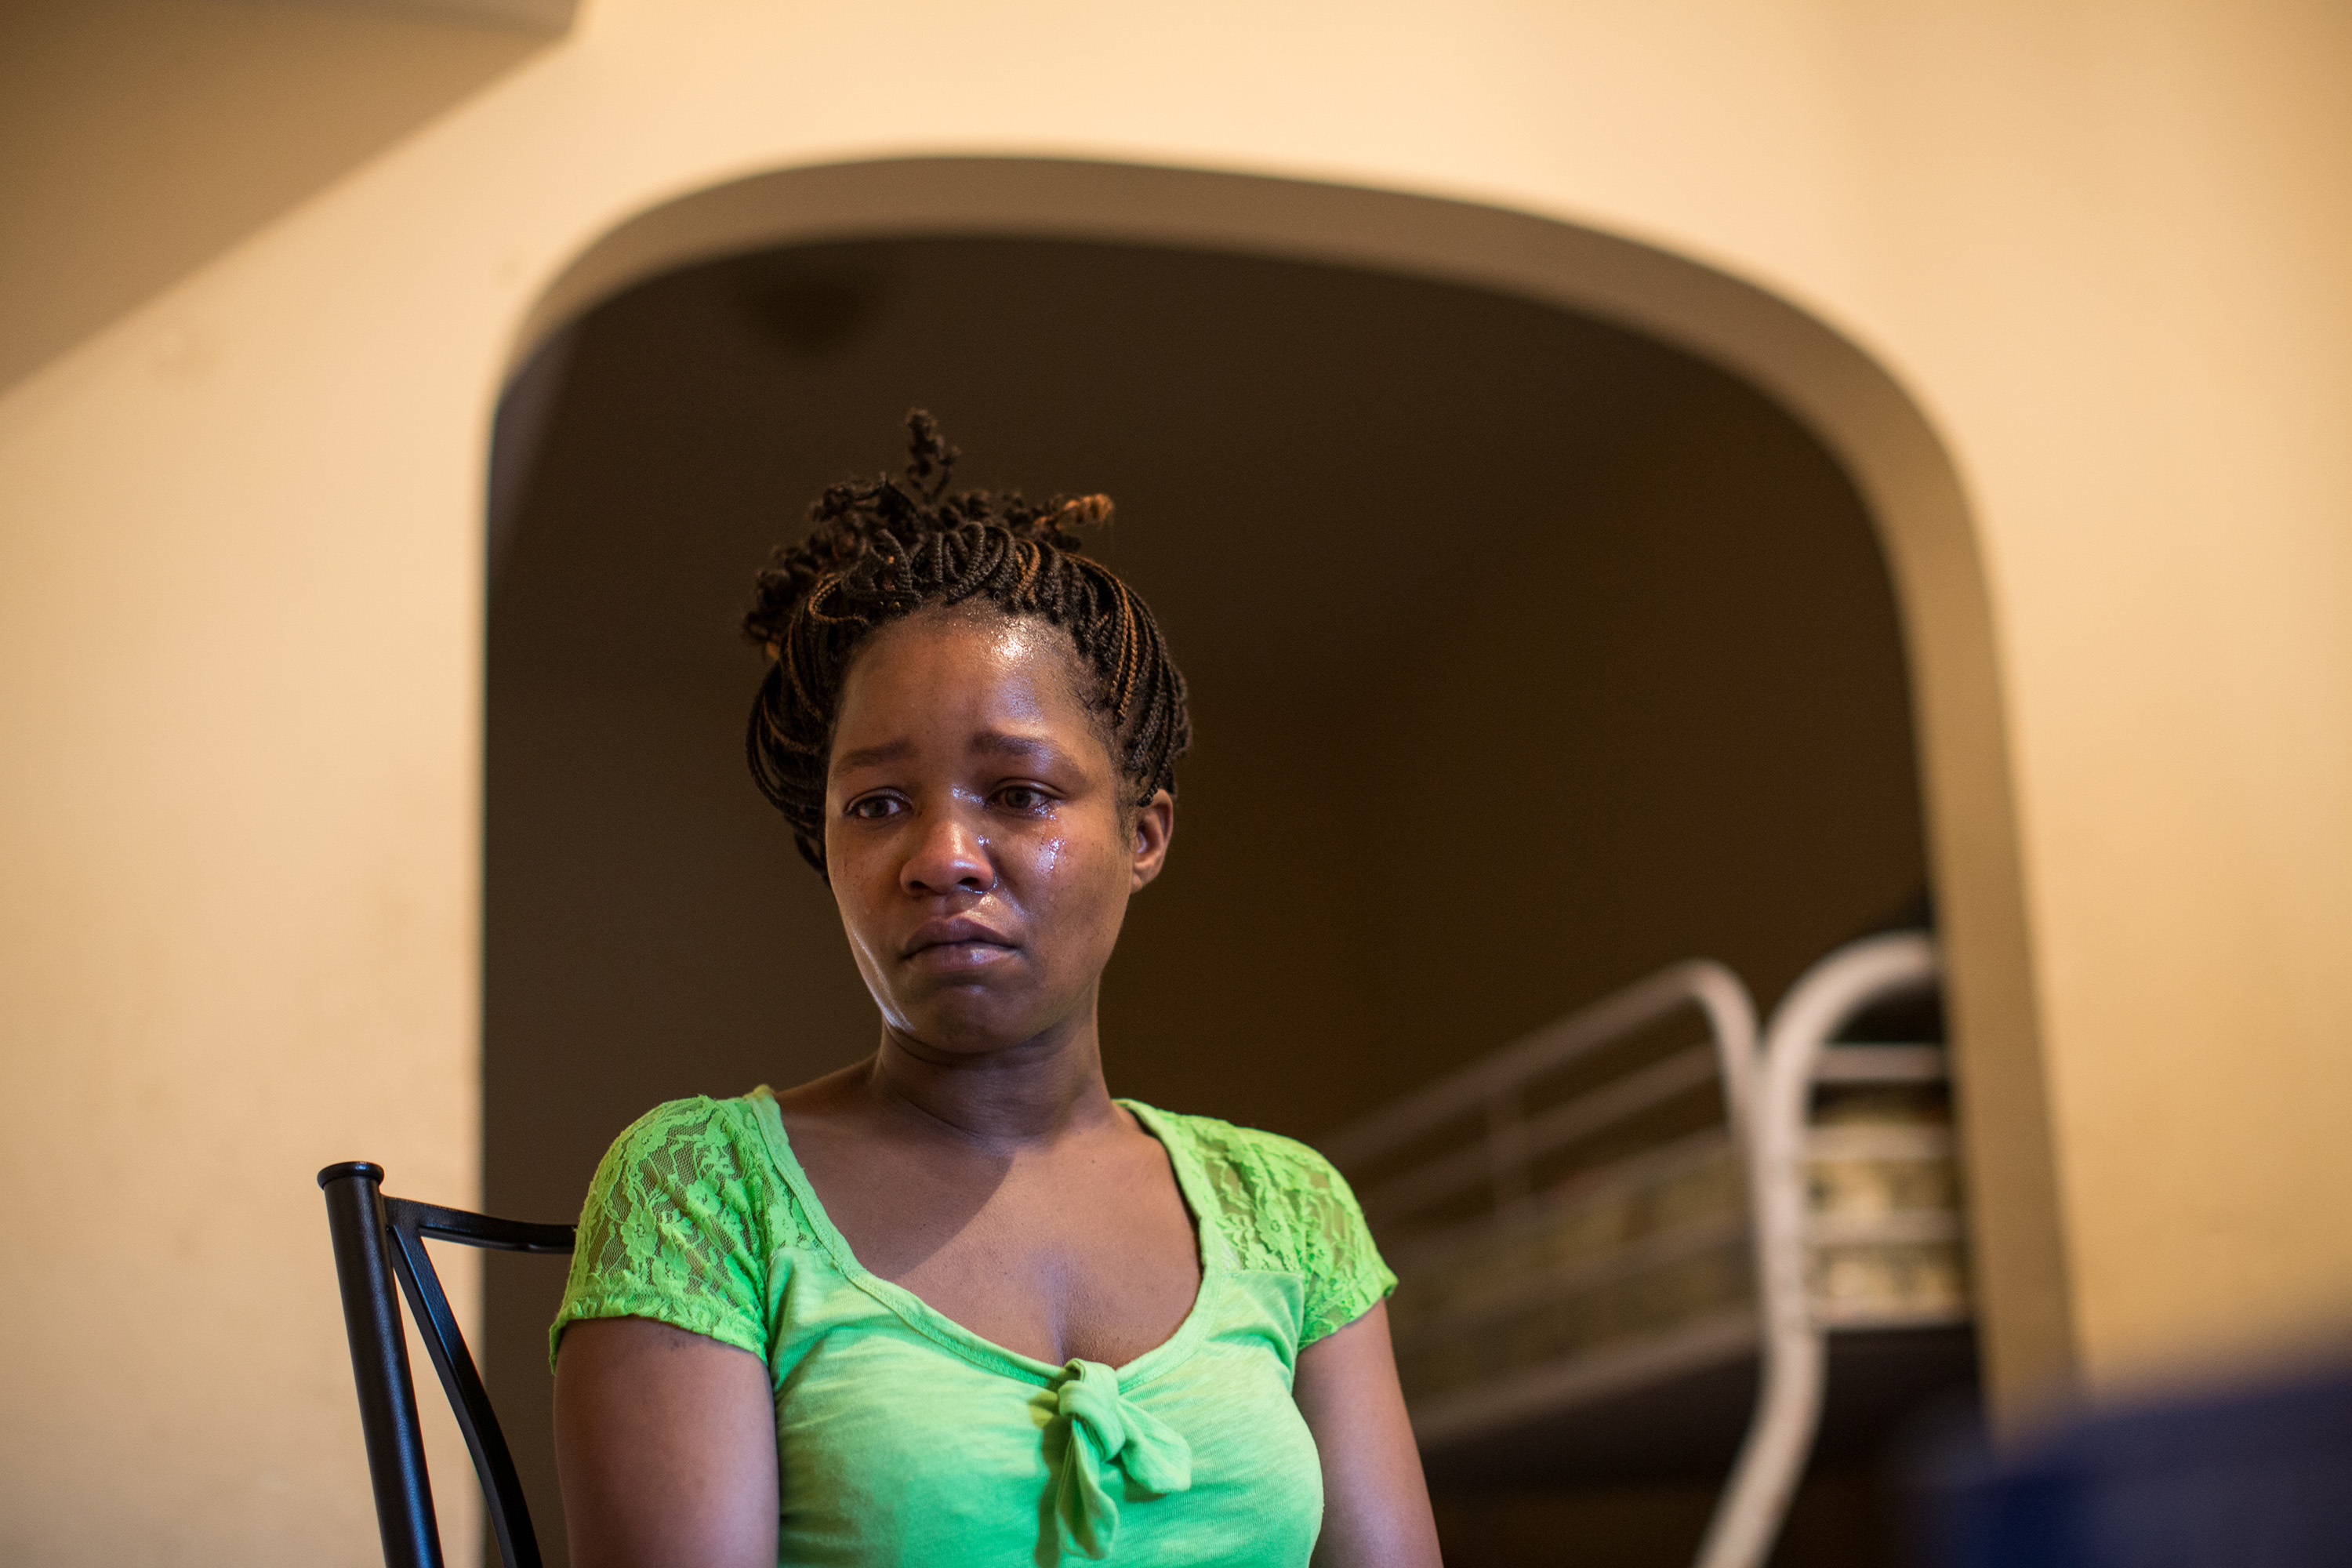 Linda Chatman talks about her son Cedrick at her apartment on Aug. 28, 2014 in Chicago, IL.